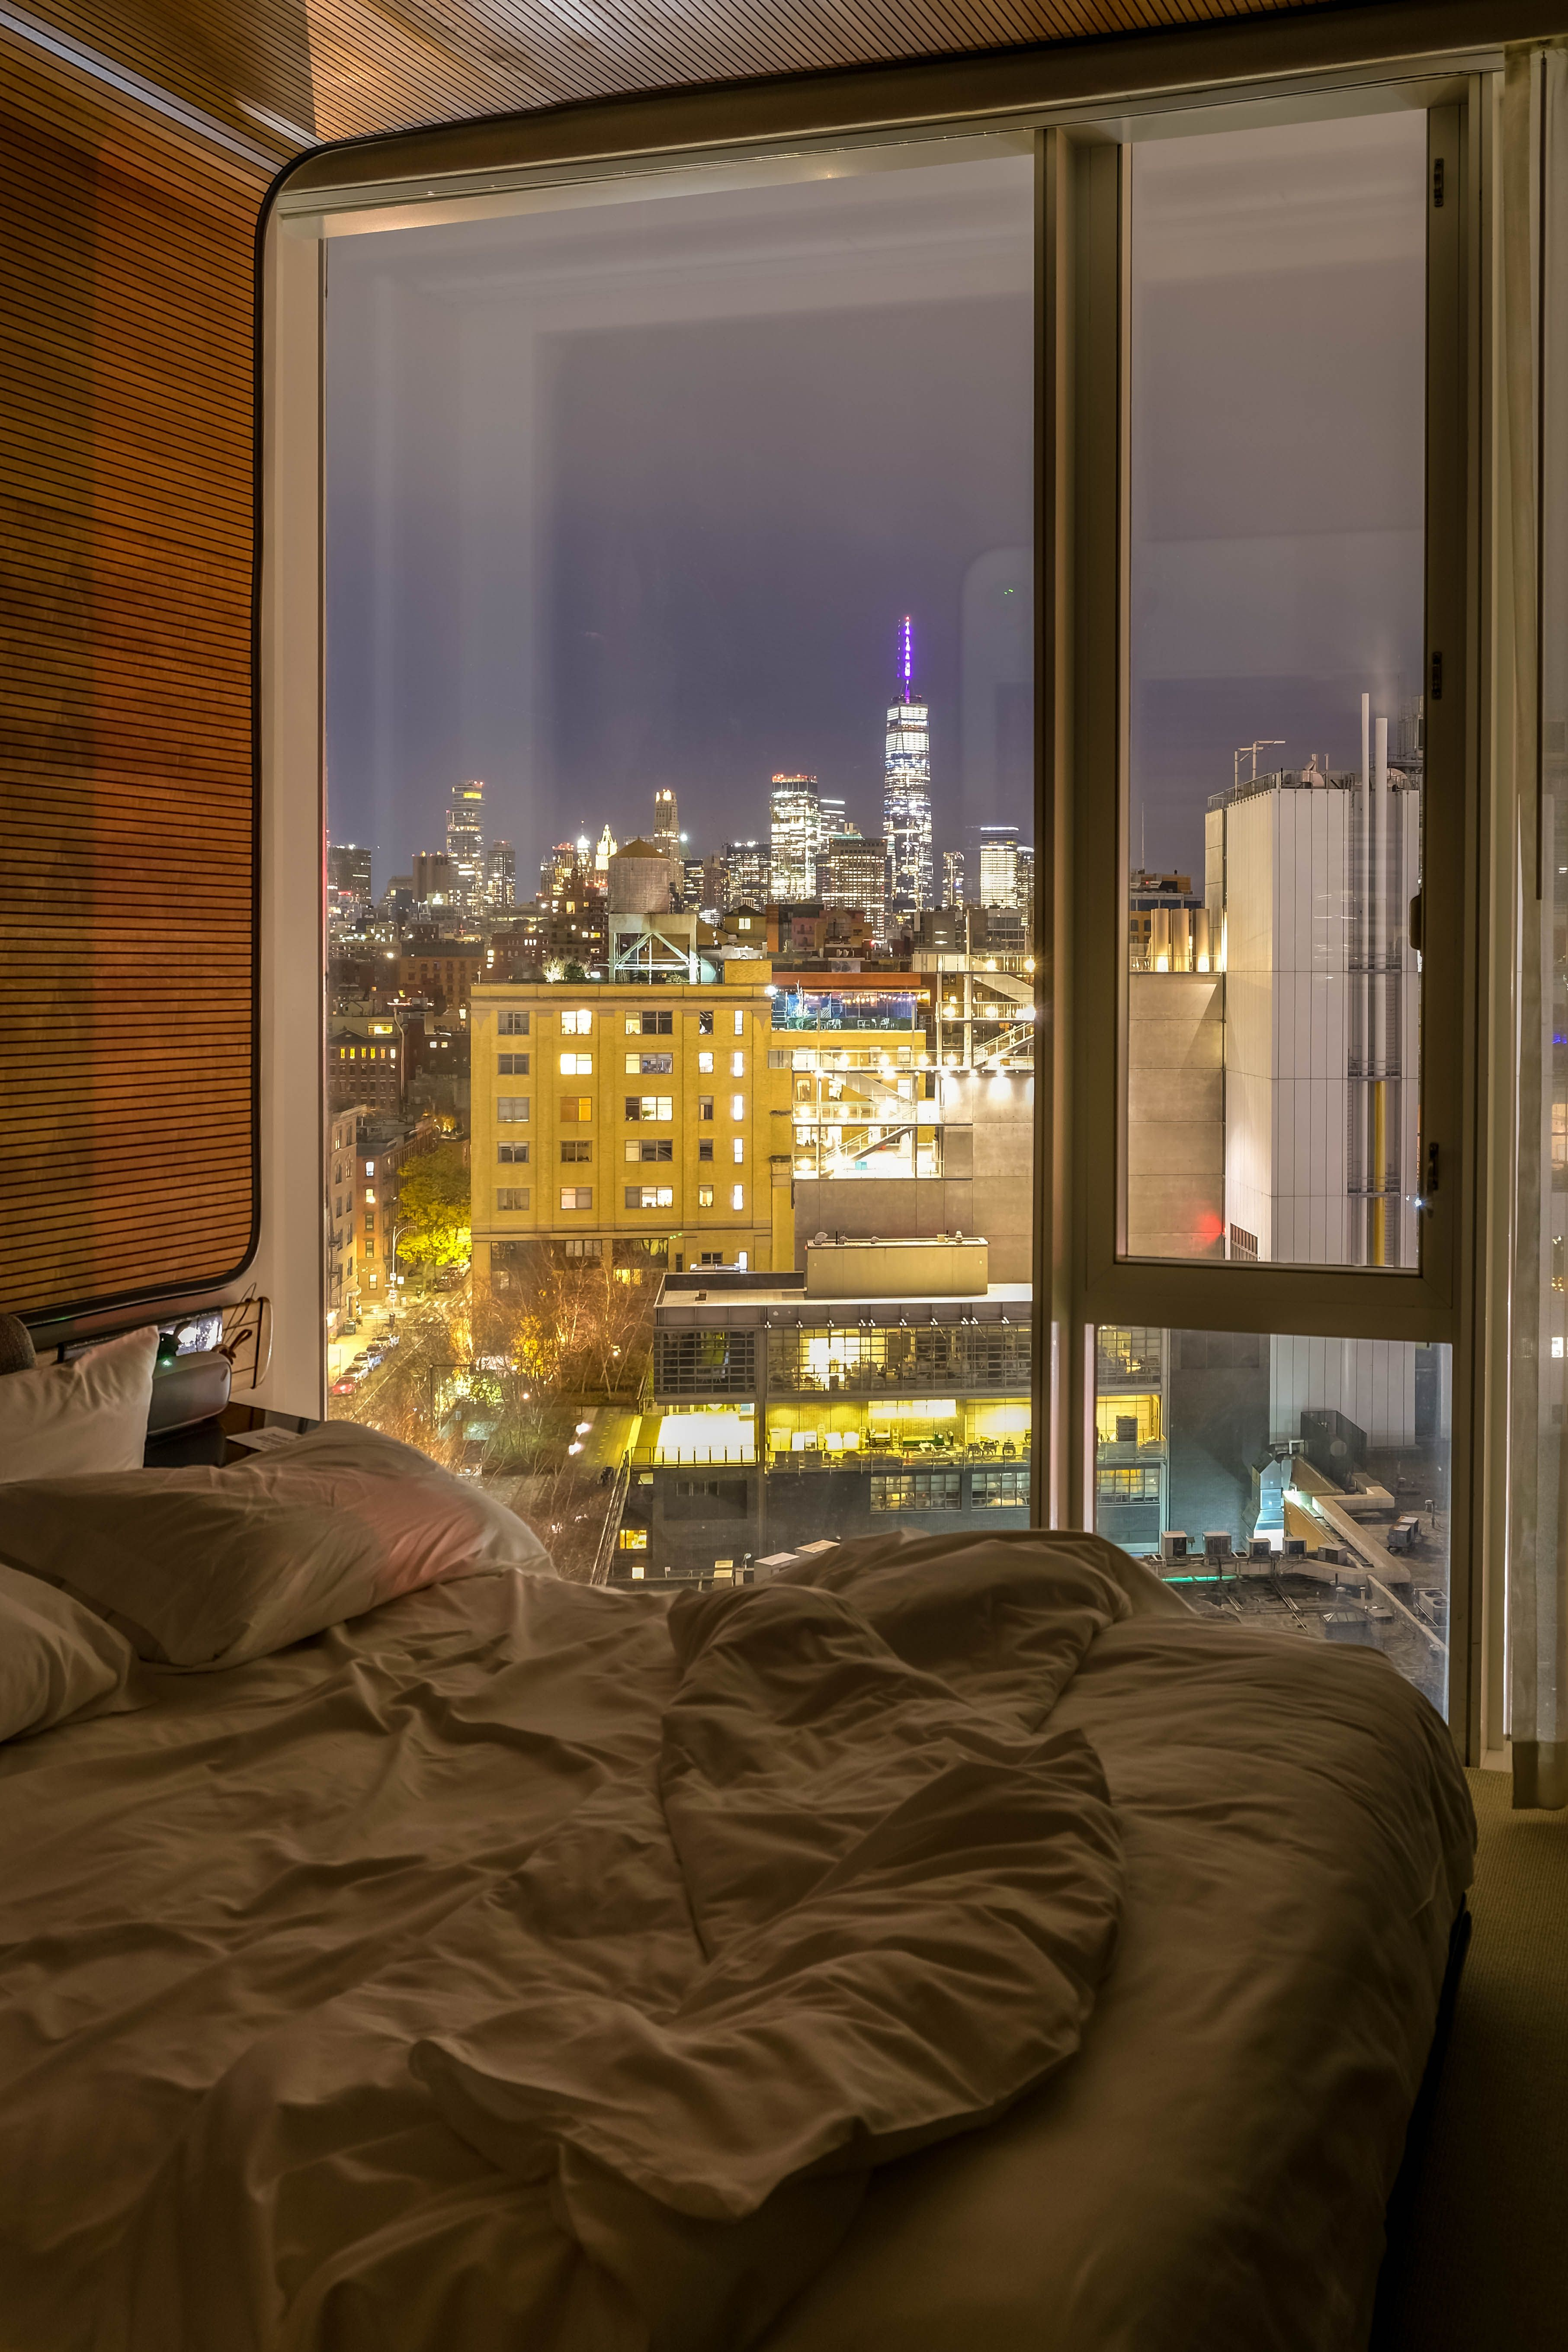 New York City View At Night Apartment View City View Apartment Dream Rooms